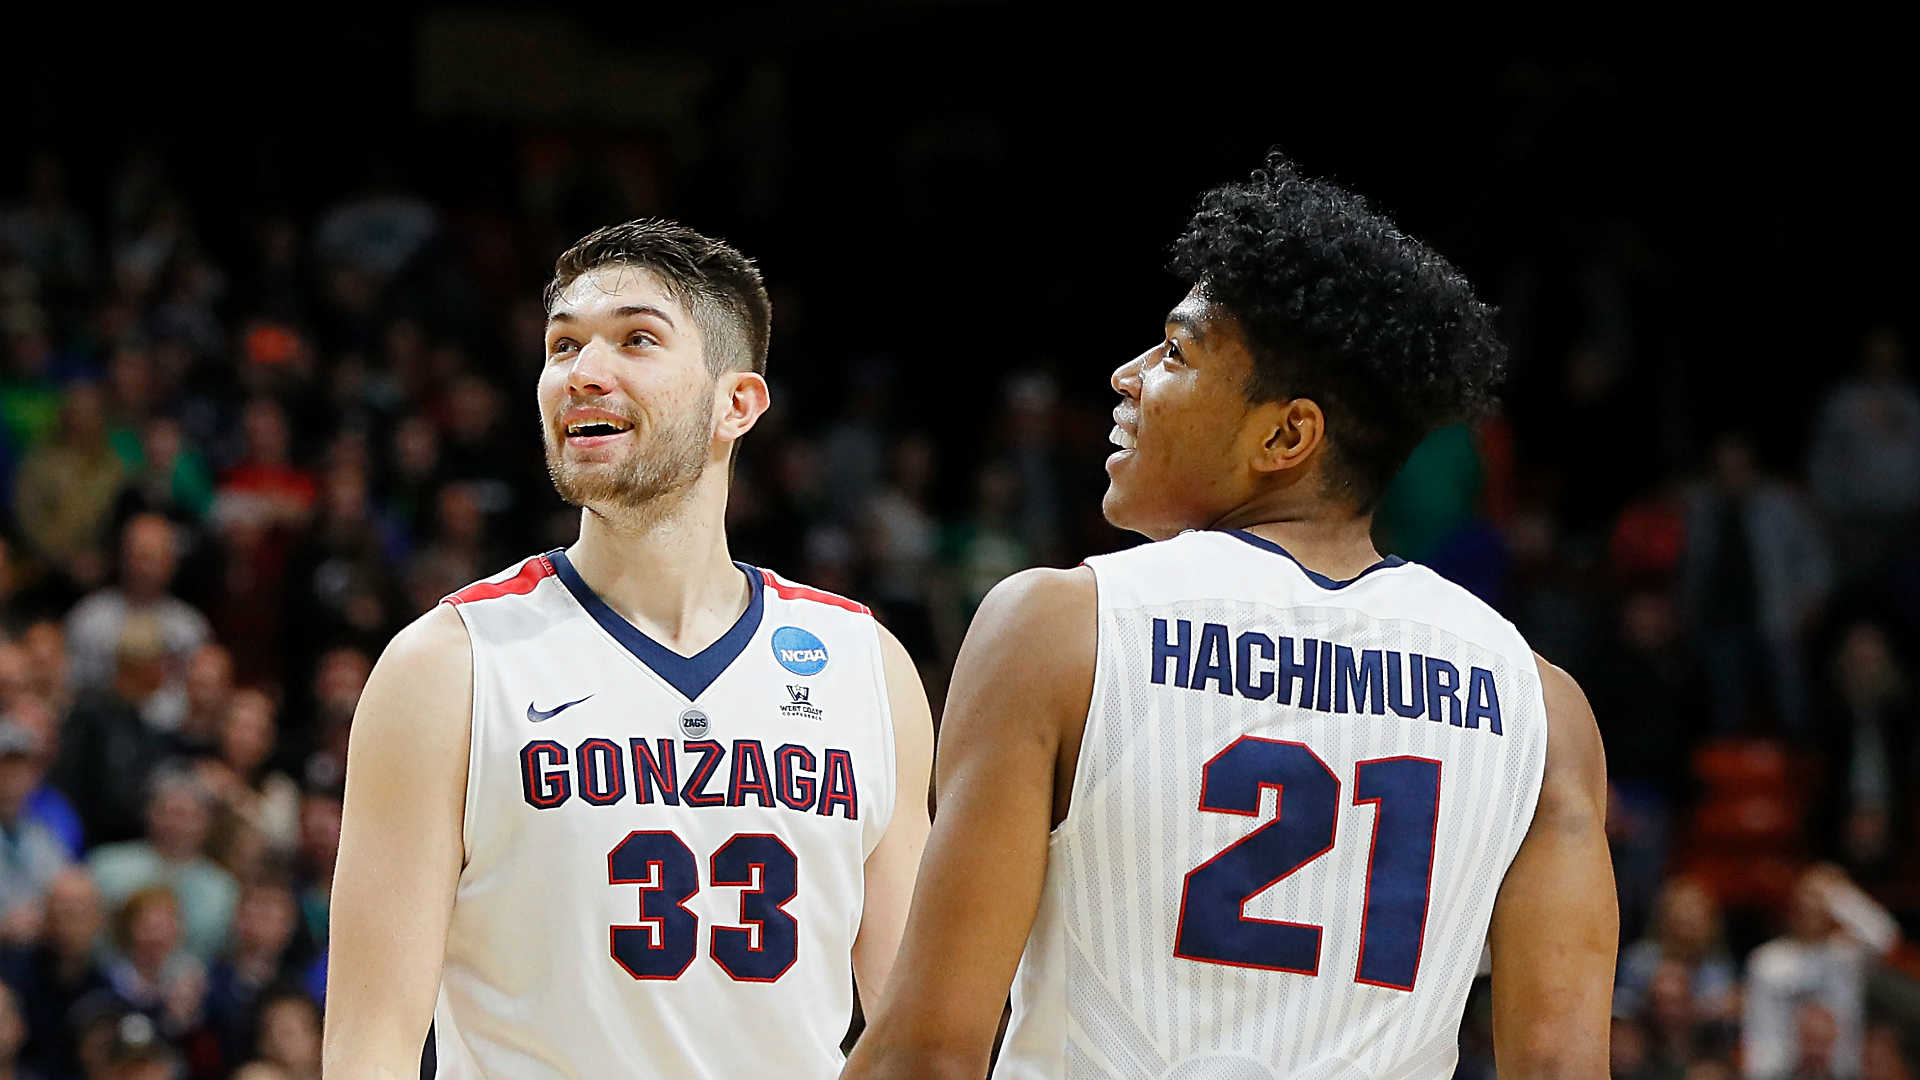 Killian-tillie-rui-hachimura-011718-getty-ftr_mof1px09ow7e1ds60348s88ws